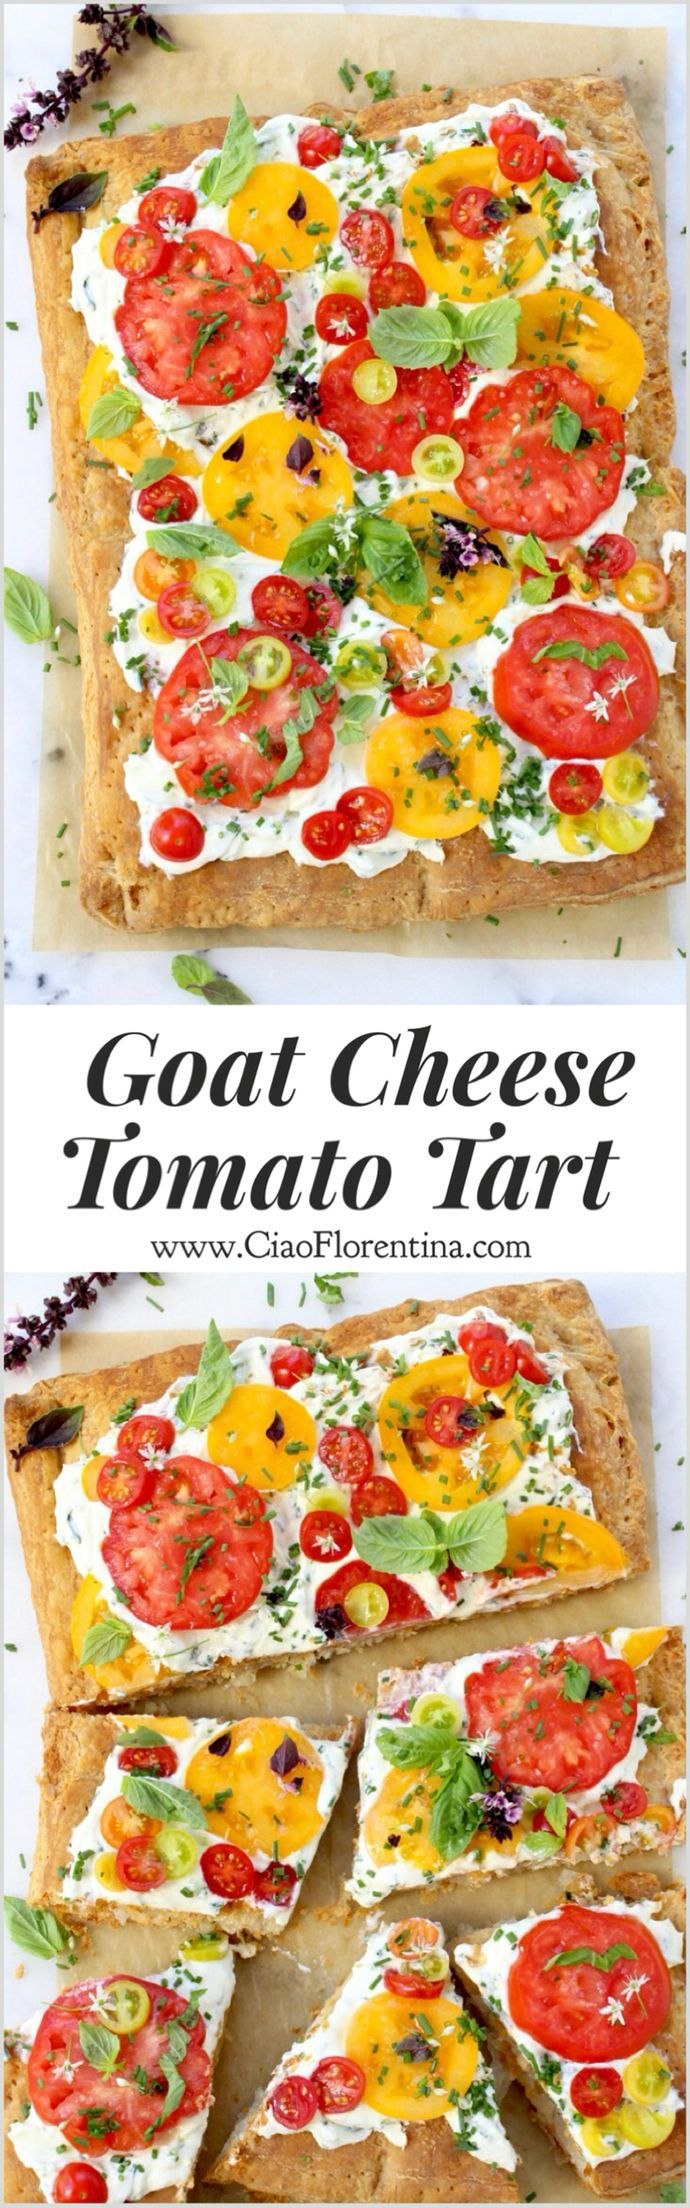 Heirloom Tomato Tart with Whipped Goat Cheese and Puff Pastry | CiaoFlorentina.com @CiaoFlorentina